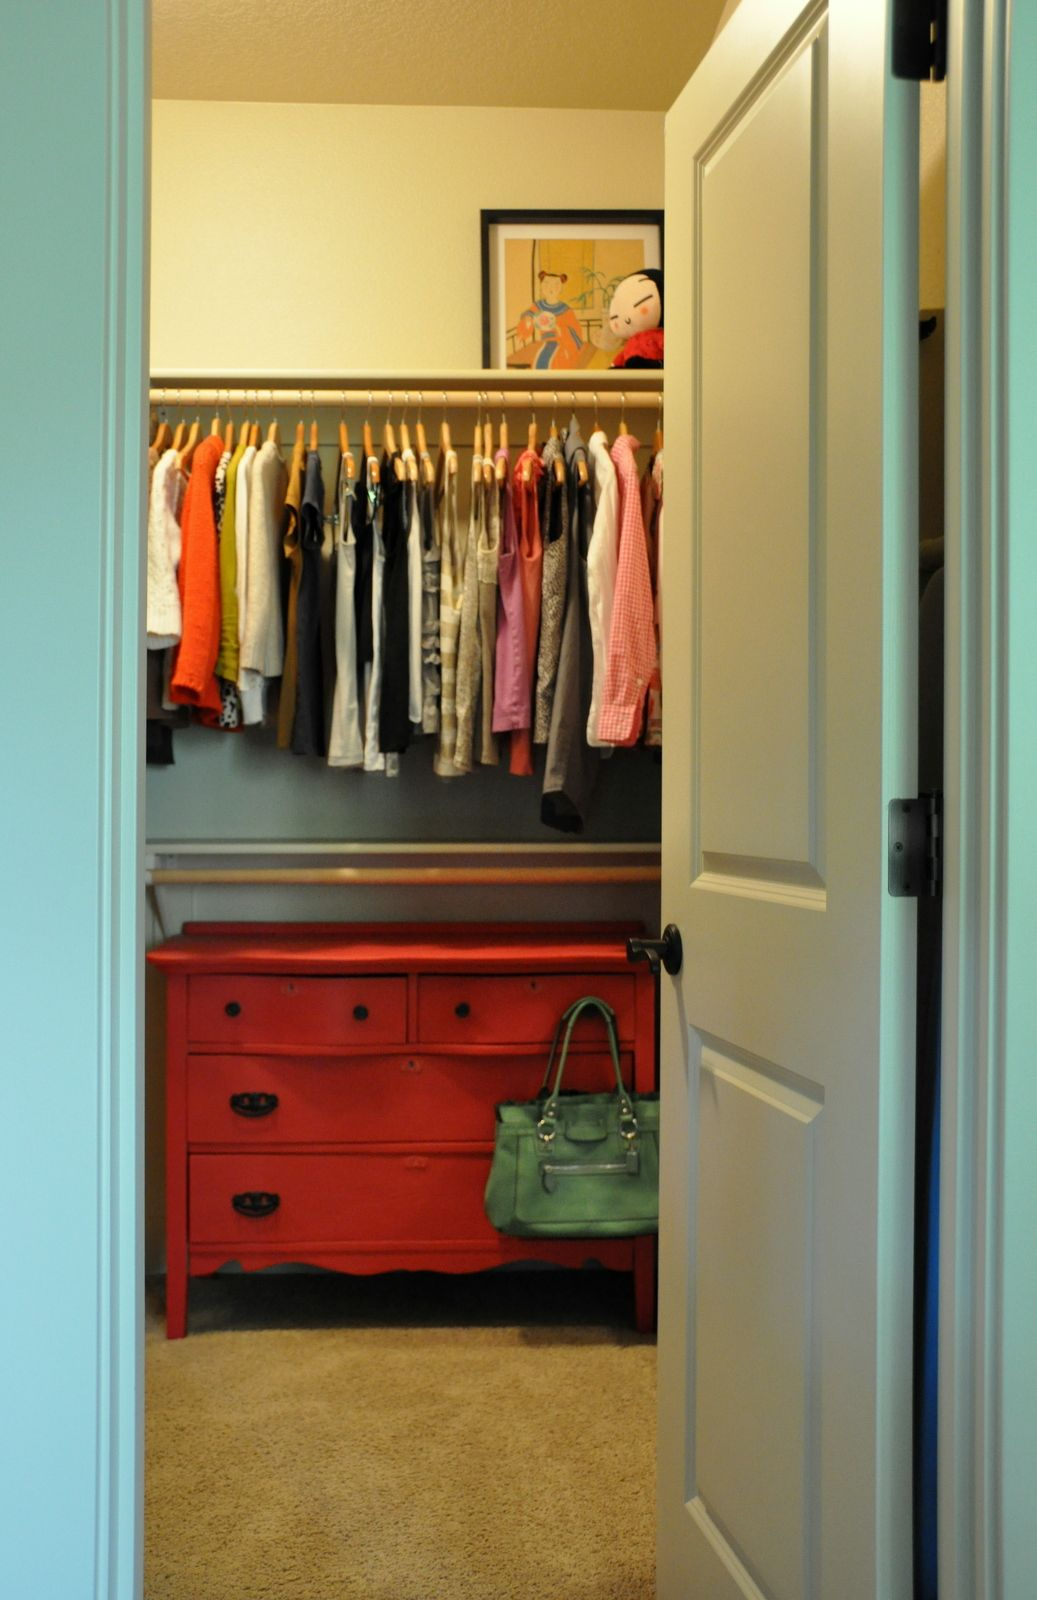 I M Super Pro If Your Closet Can Fit It Put Your Dresser In There